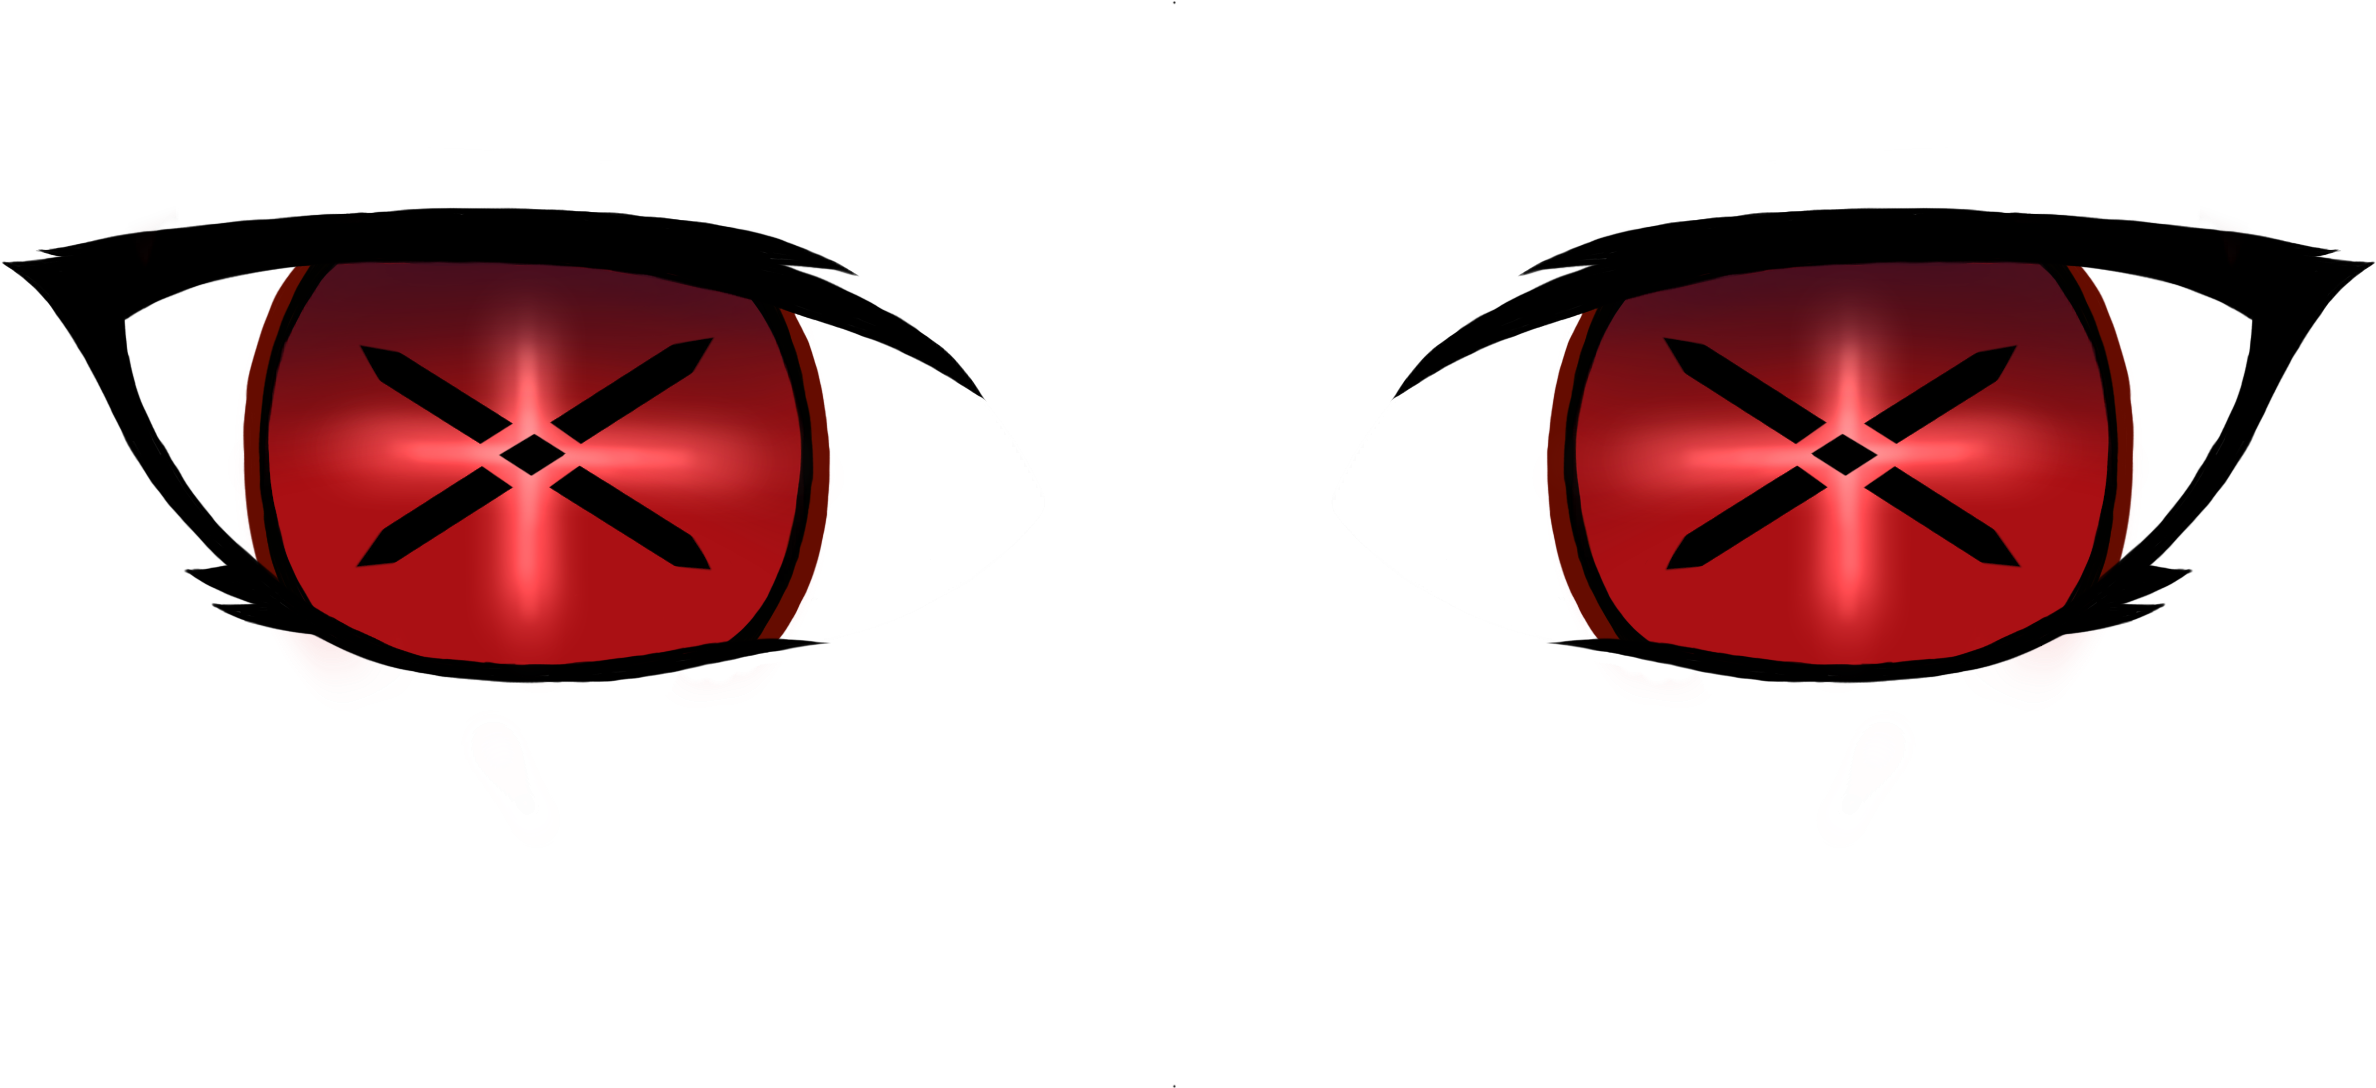 Demon eyes png. Download cartoon image with